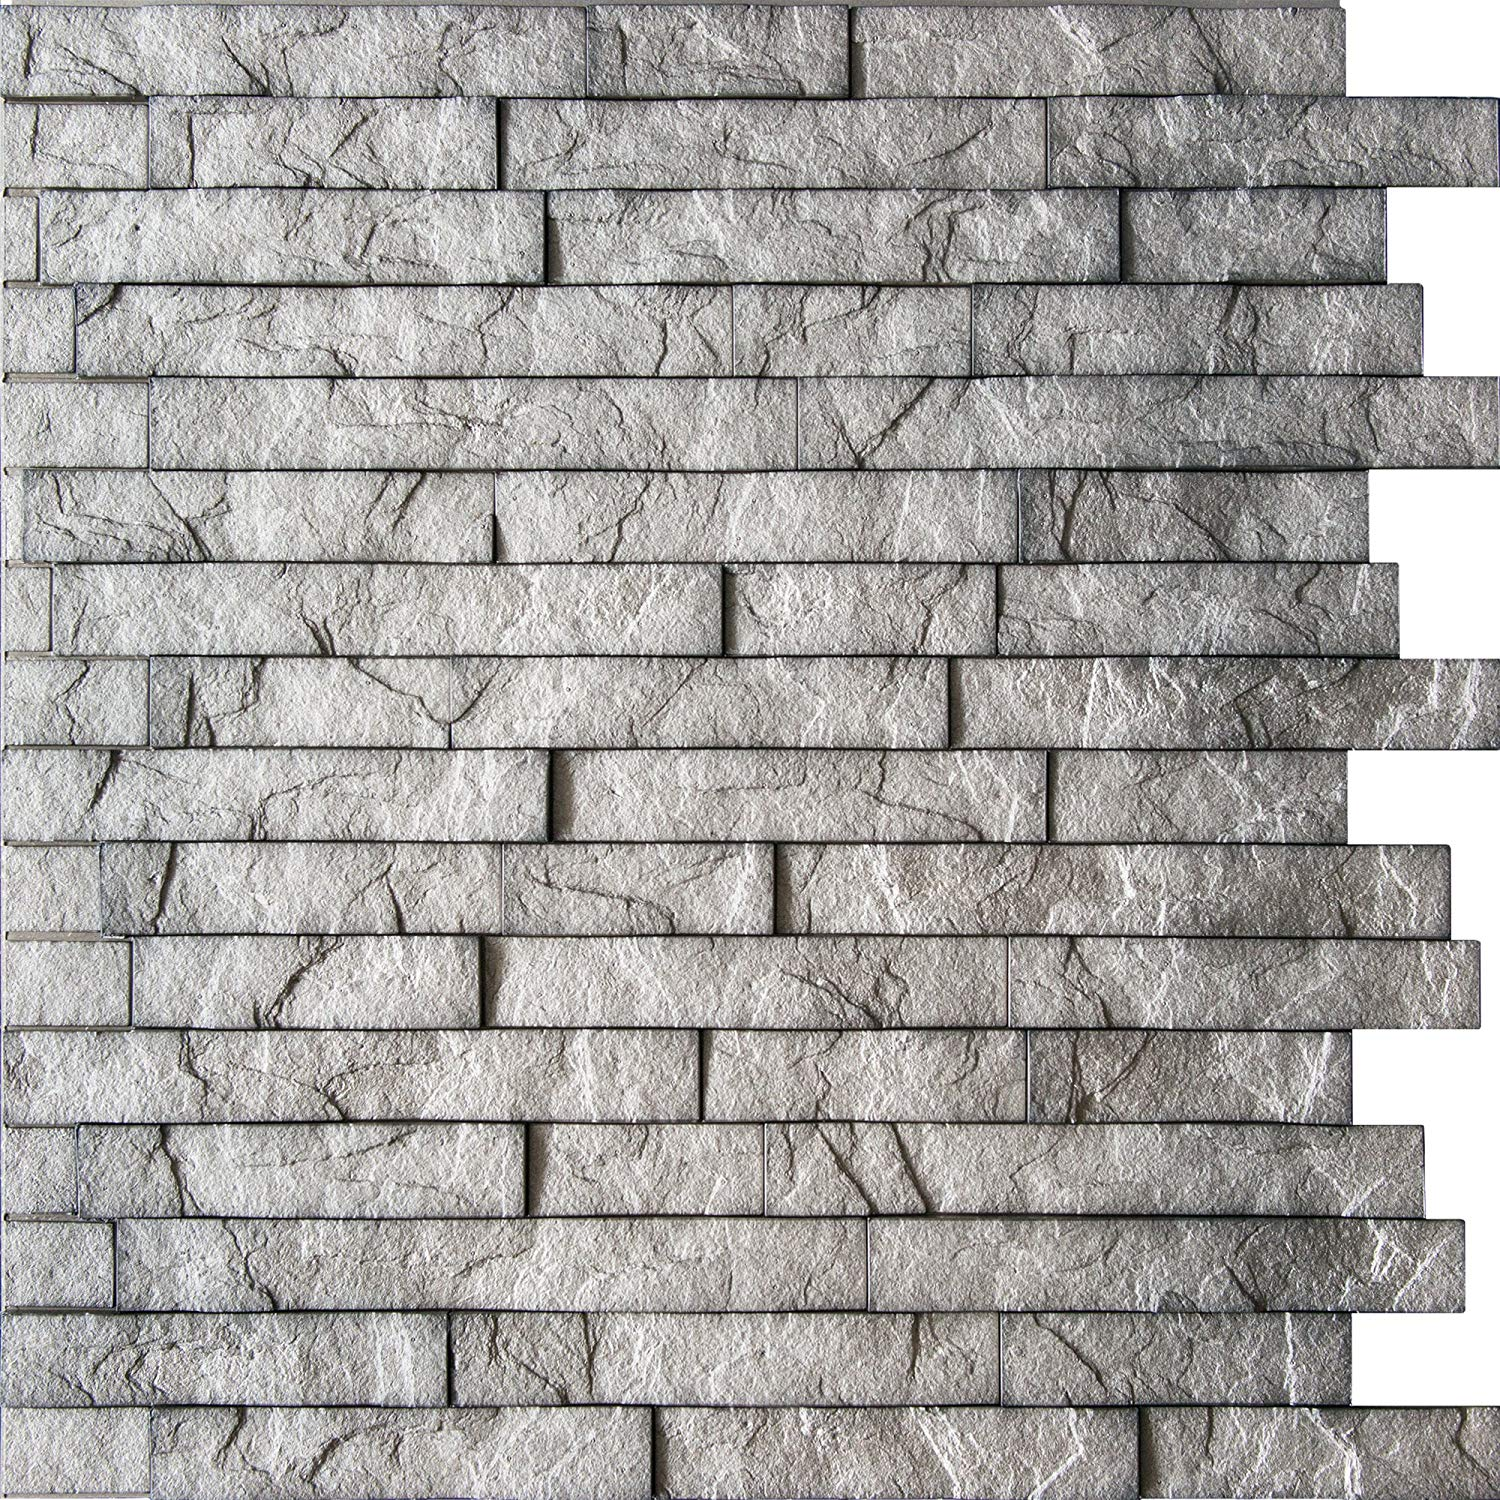 """Ledge Stone 3D Decorative Wall Panels - Lightweight thermoplastic Decorative 3D Wall Tiles for Easy Glue Up Installation. Sparkled Grey Color. Pack of 4 Tiles (Each Tile 24""""x24"""" Covers ~4 sq. ft)"""